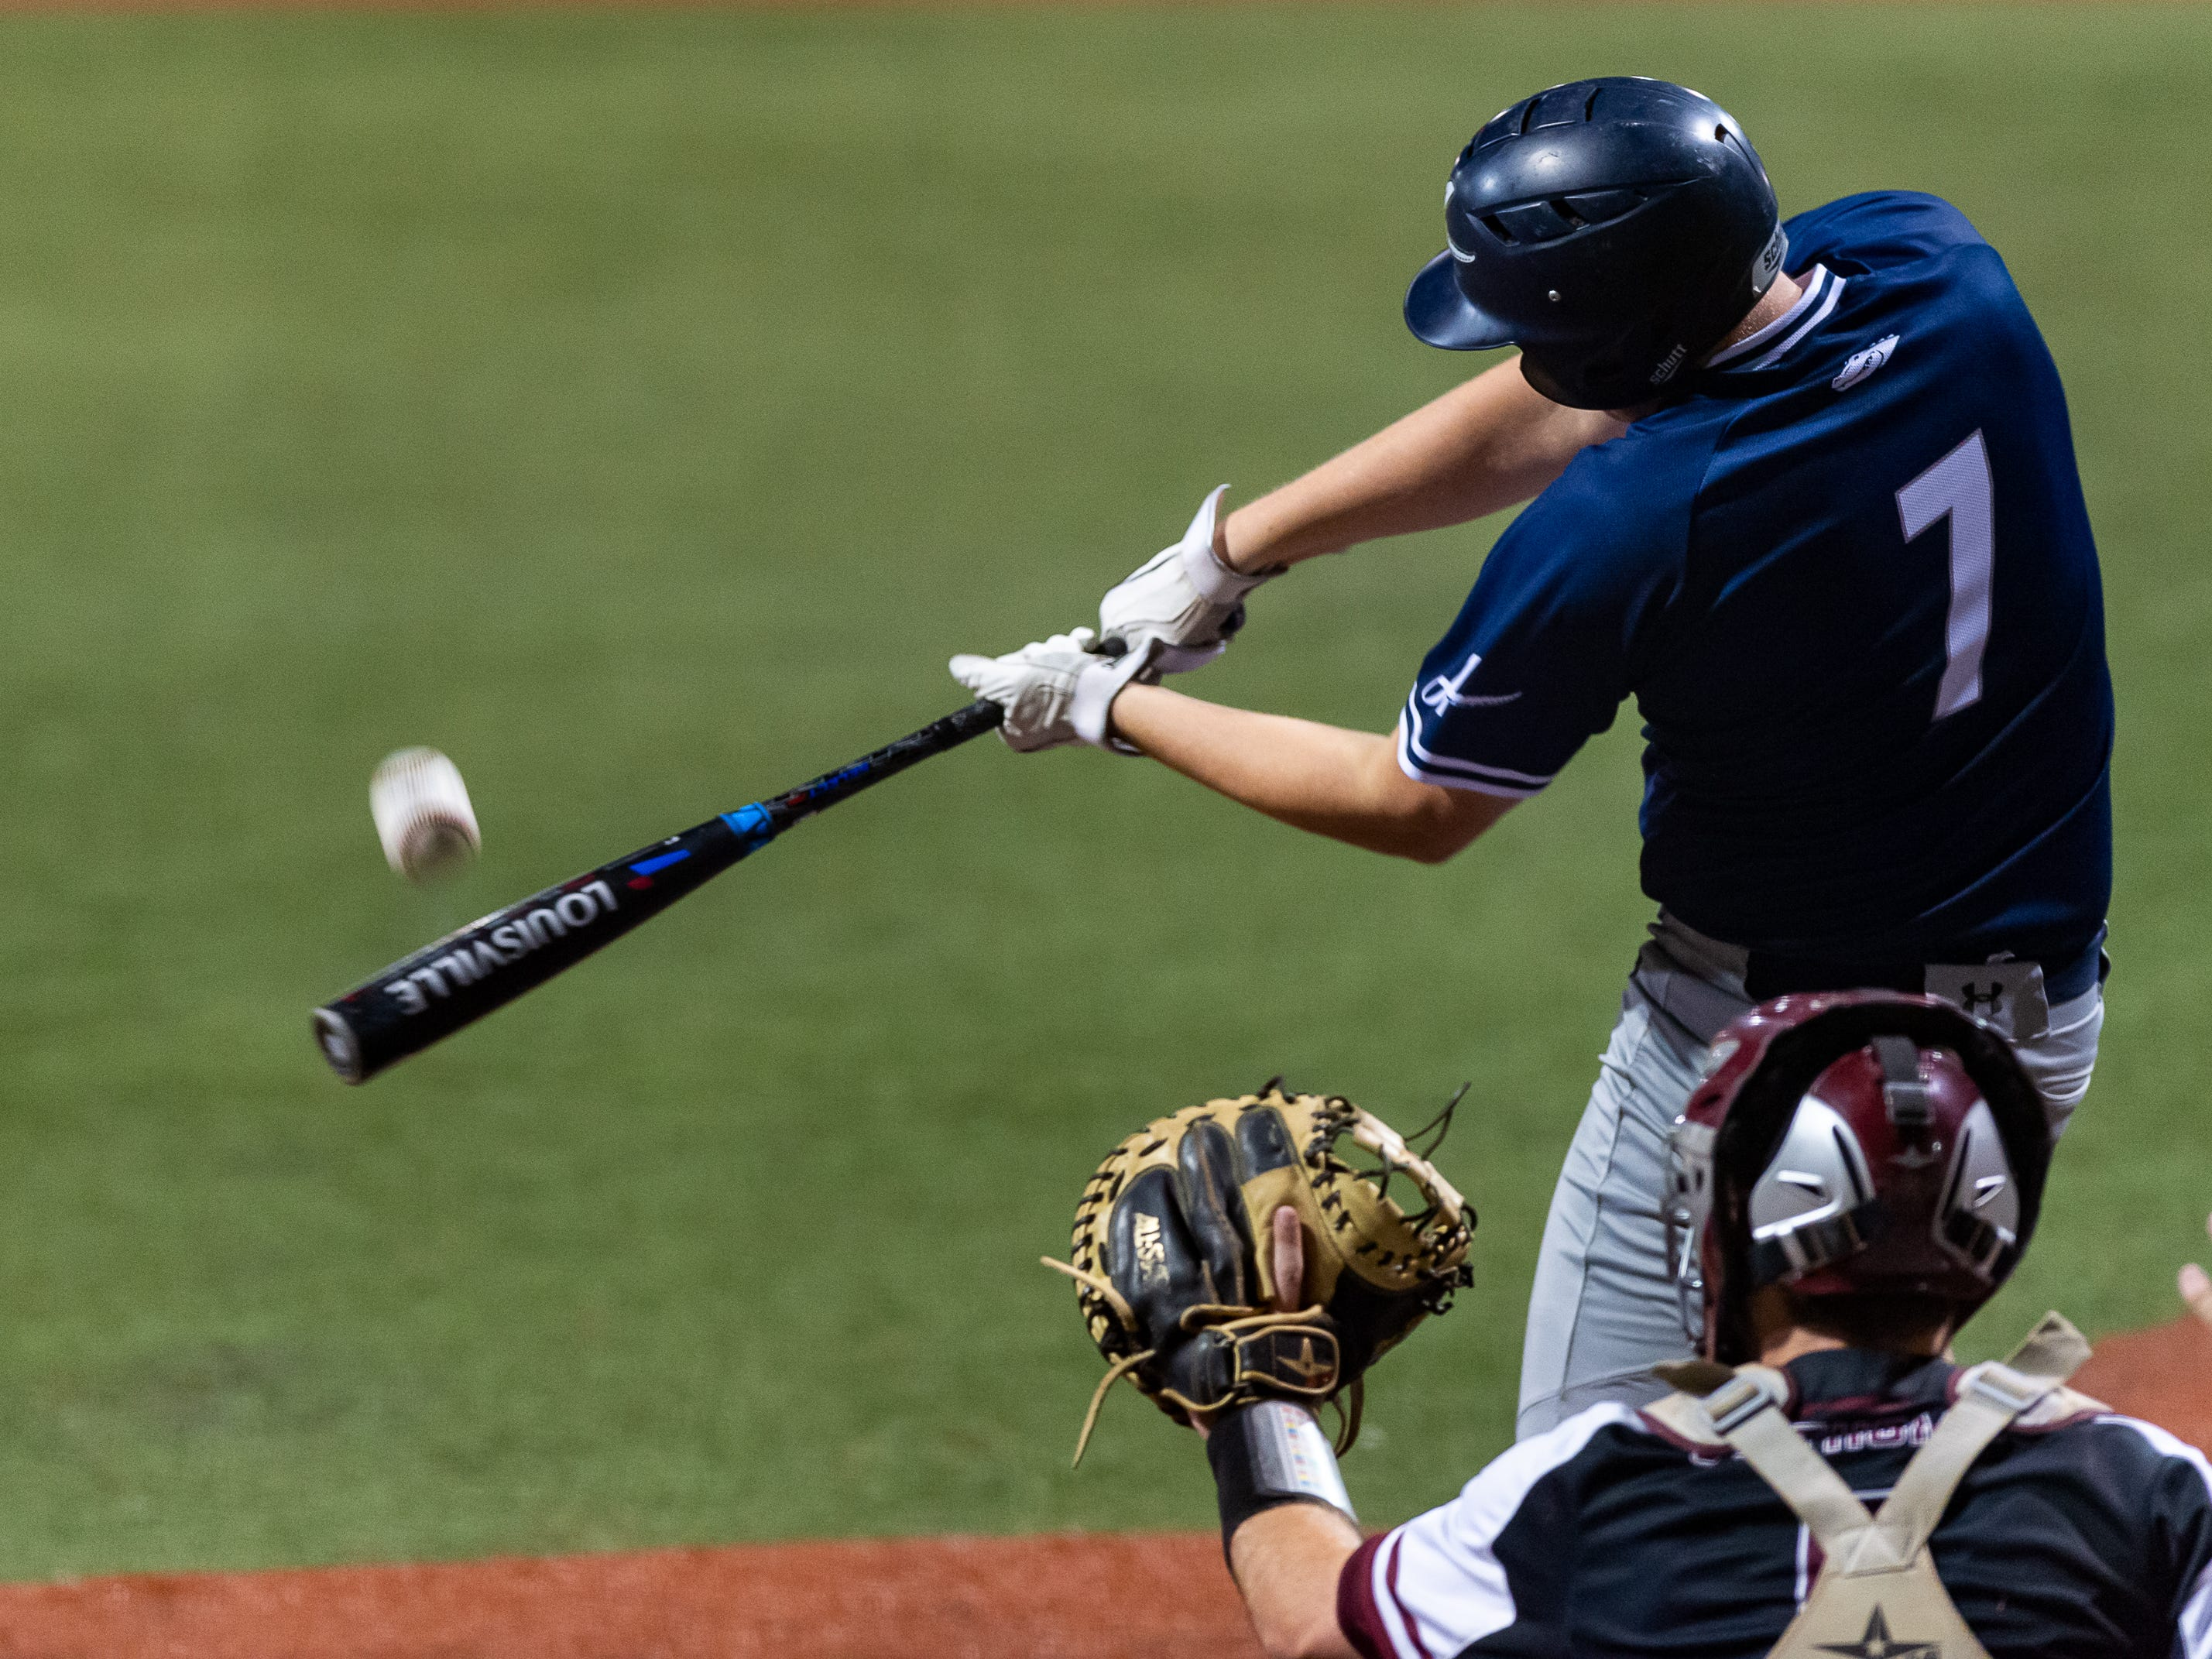 Drake Lee at the plate as Ascension Episcopal takes on St. Thomas Aquinas in the semi final round at the LHSAA State Championship. Wednesday, May 8, 2019.